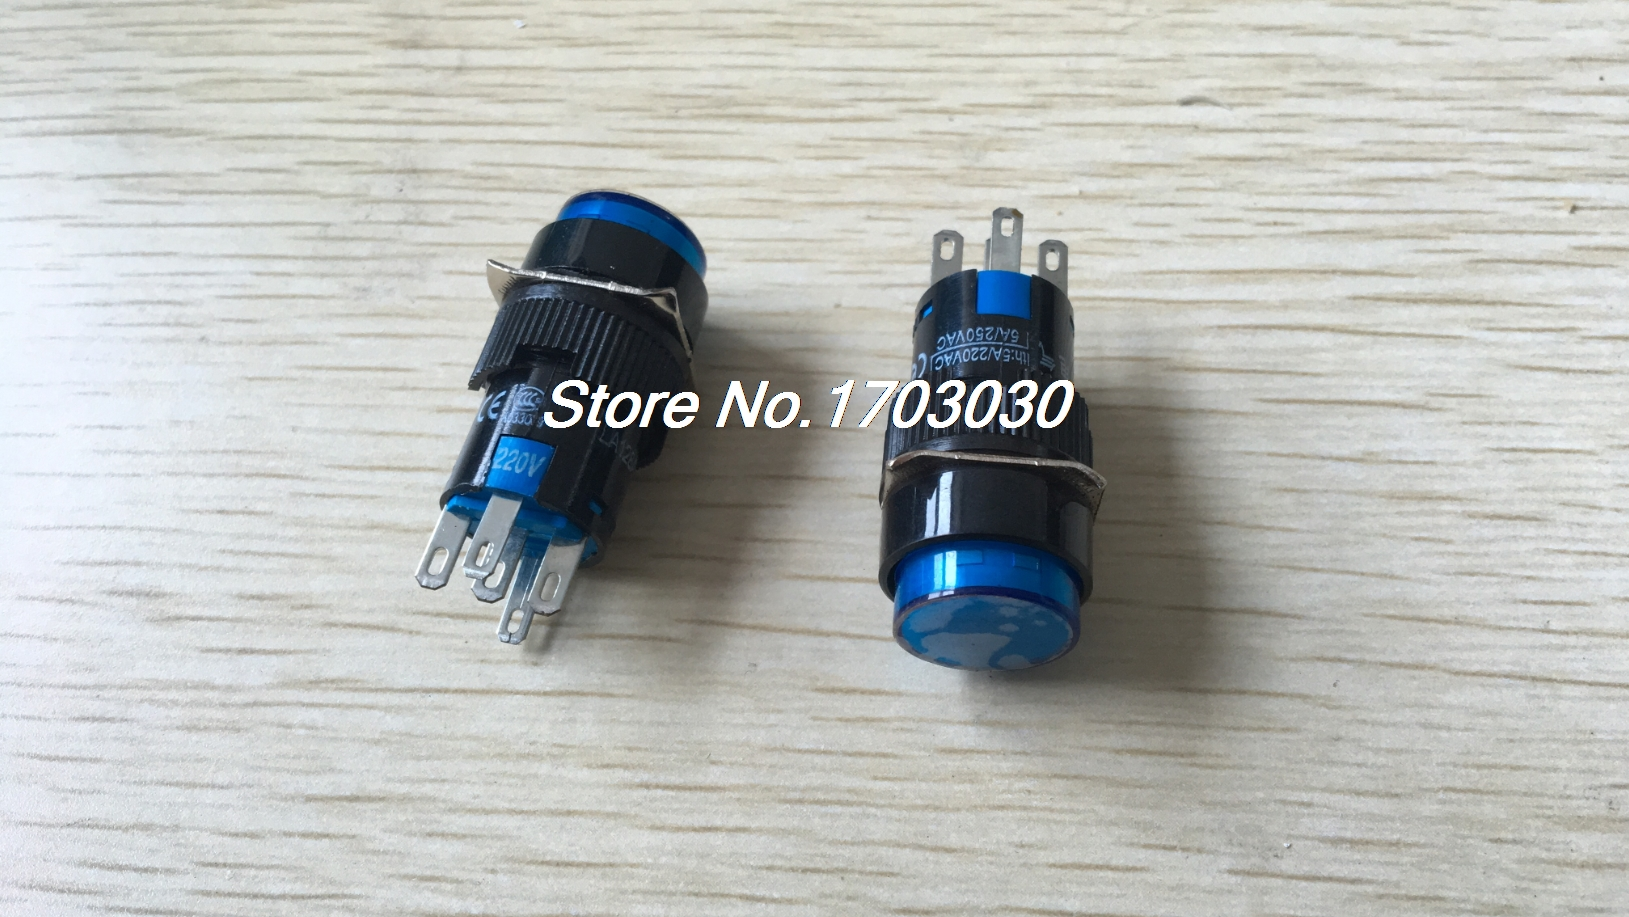 2 Pcs AC 220V Blue Light Momentary SPDT Round AC 250V 5A Push Button Switch round magnetic button fridge navy blue coffee 5 pcs